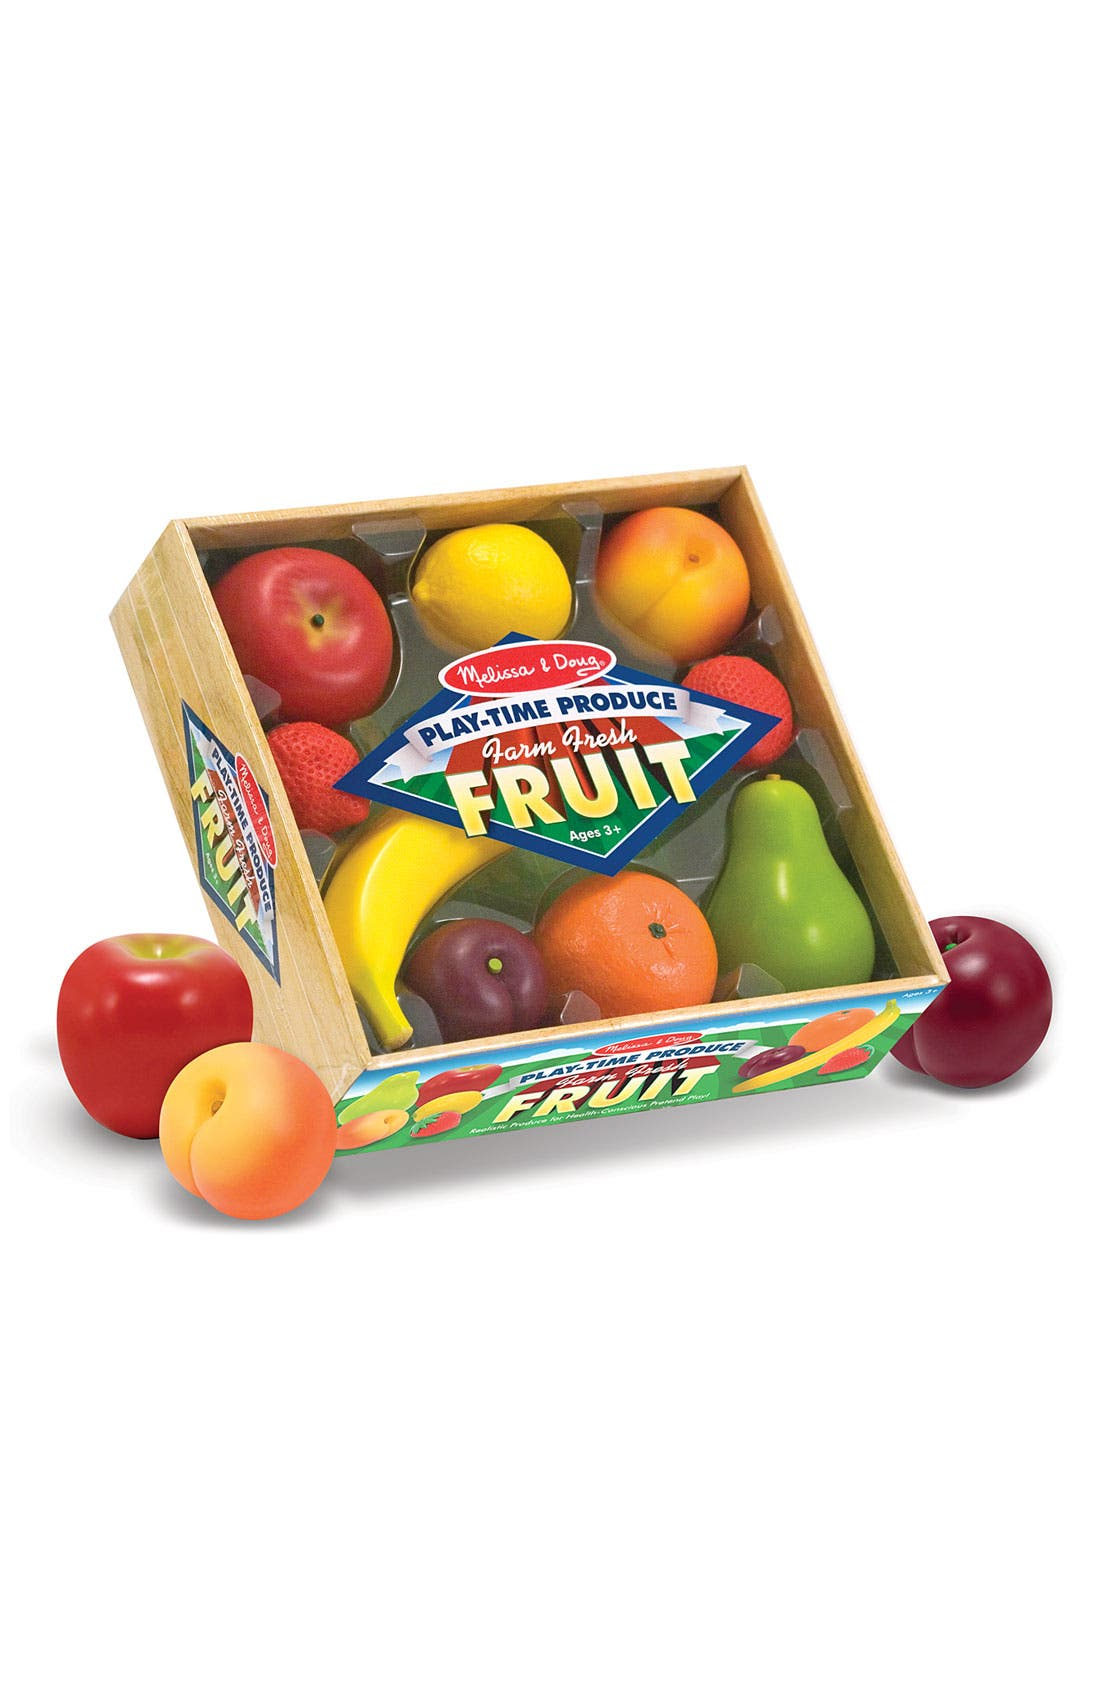 Alternate Image 1 Selected - Melissa & Doug Play Time Fruit Crate